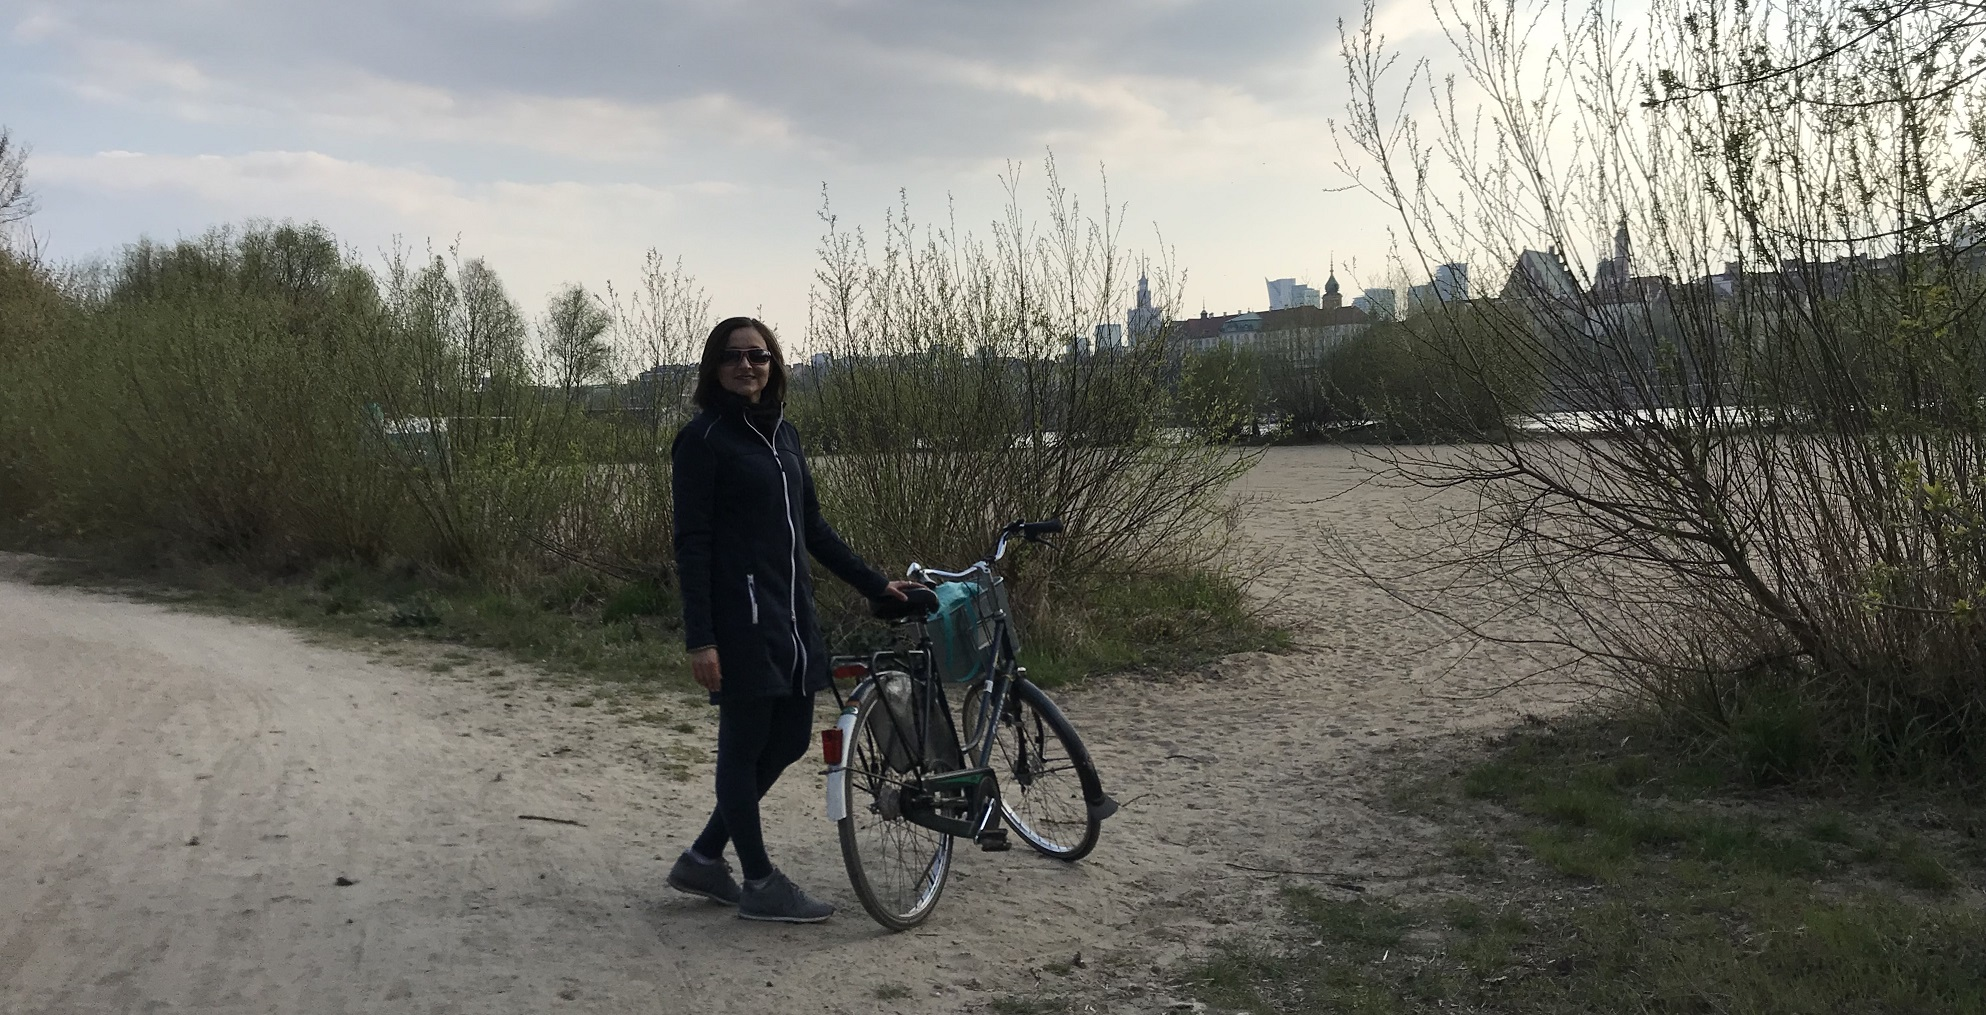 Step in Warsaw - City guide to Warsaw. A forest bike route along the Vistula river. I always tell my tourists about this extraordinary place. A view of the city. Warsaw, 07.04.2019.